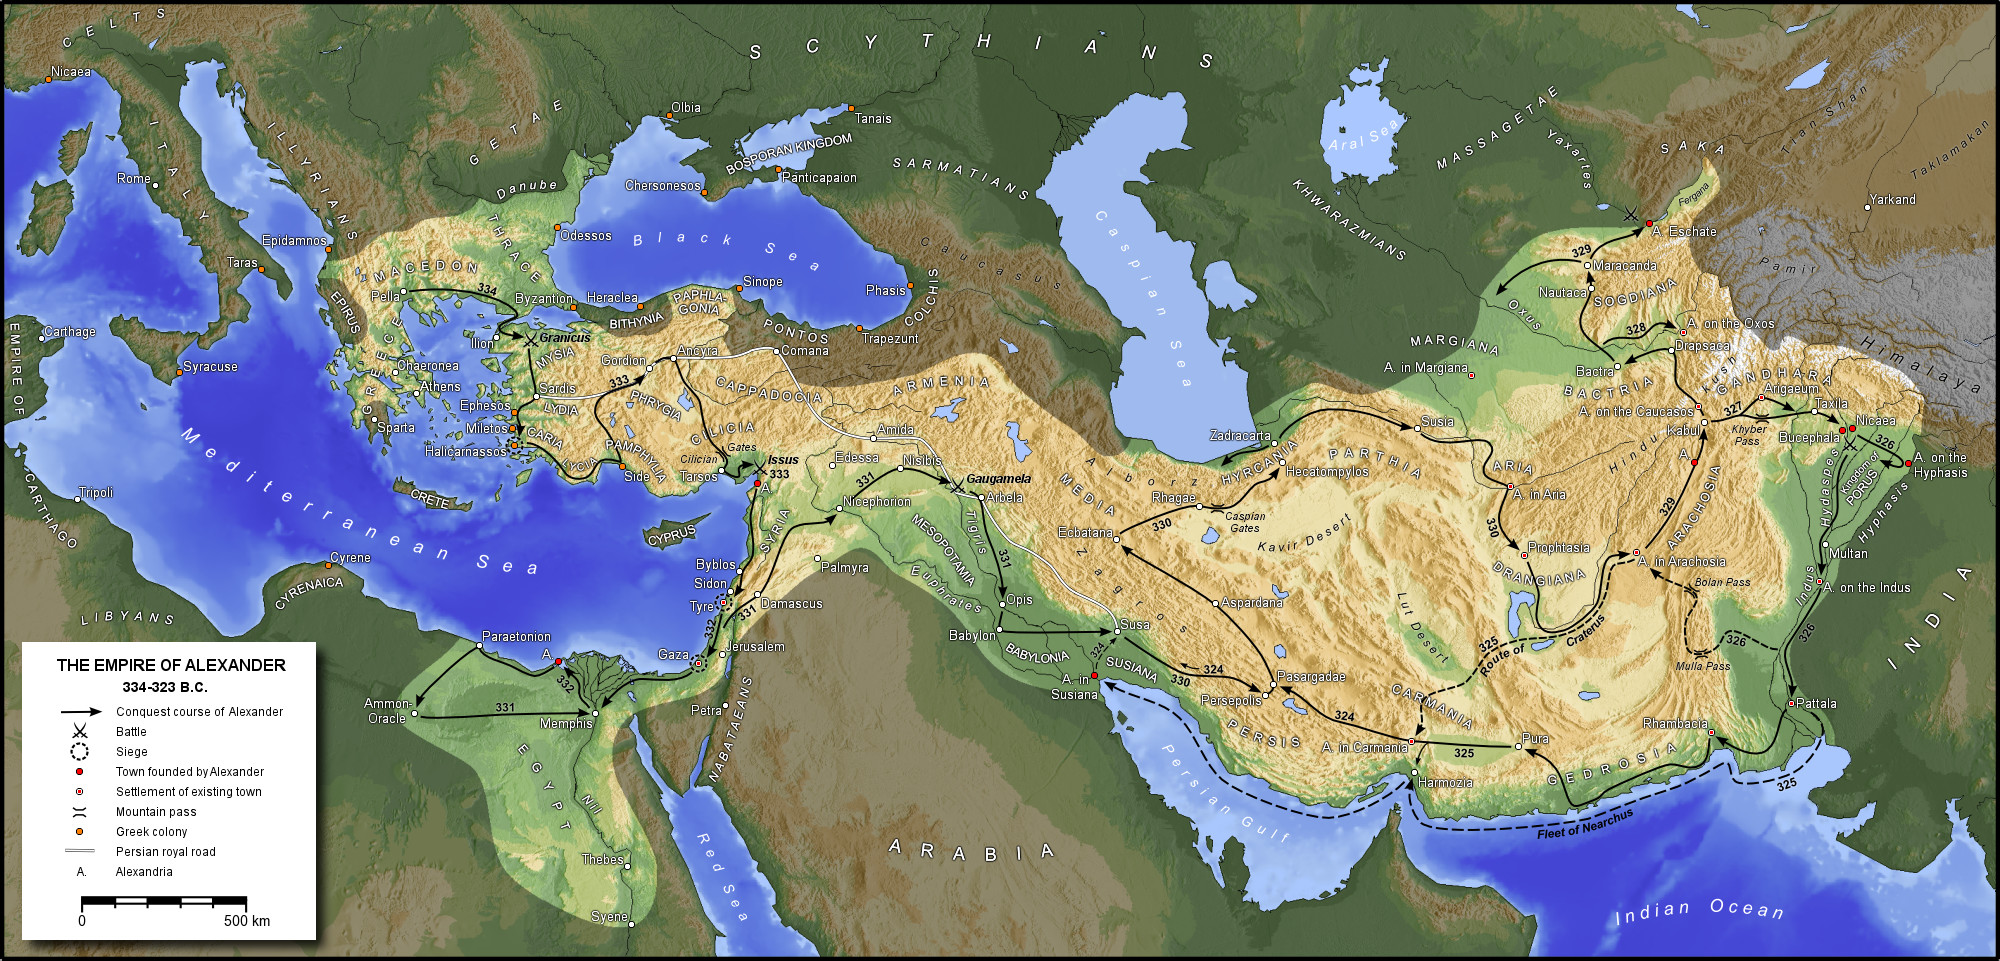 an analysis of the persian empire which stretched from the indus river all the way to egypt World history/ancient civilizations and euphrates river) egypt to humanity from prehistoric times by their persian empire all the way through to the.